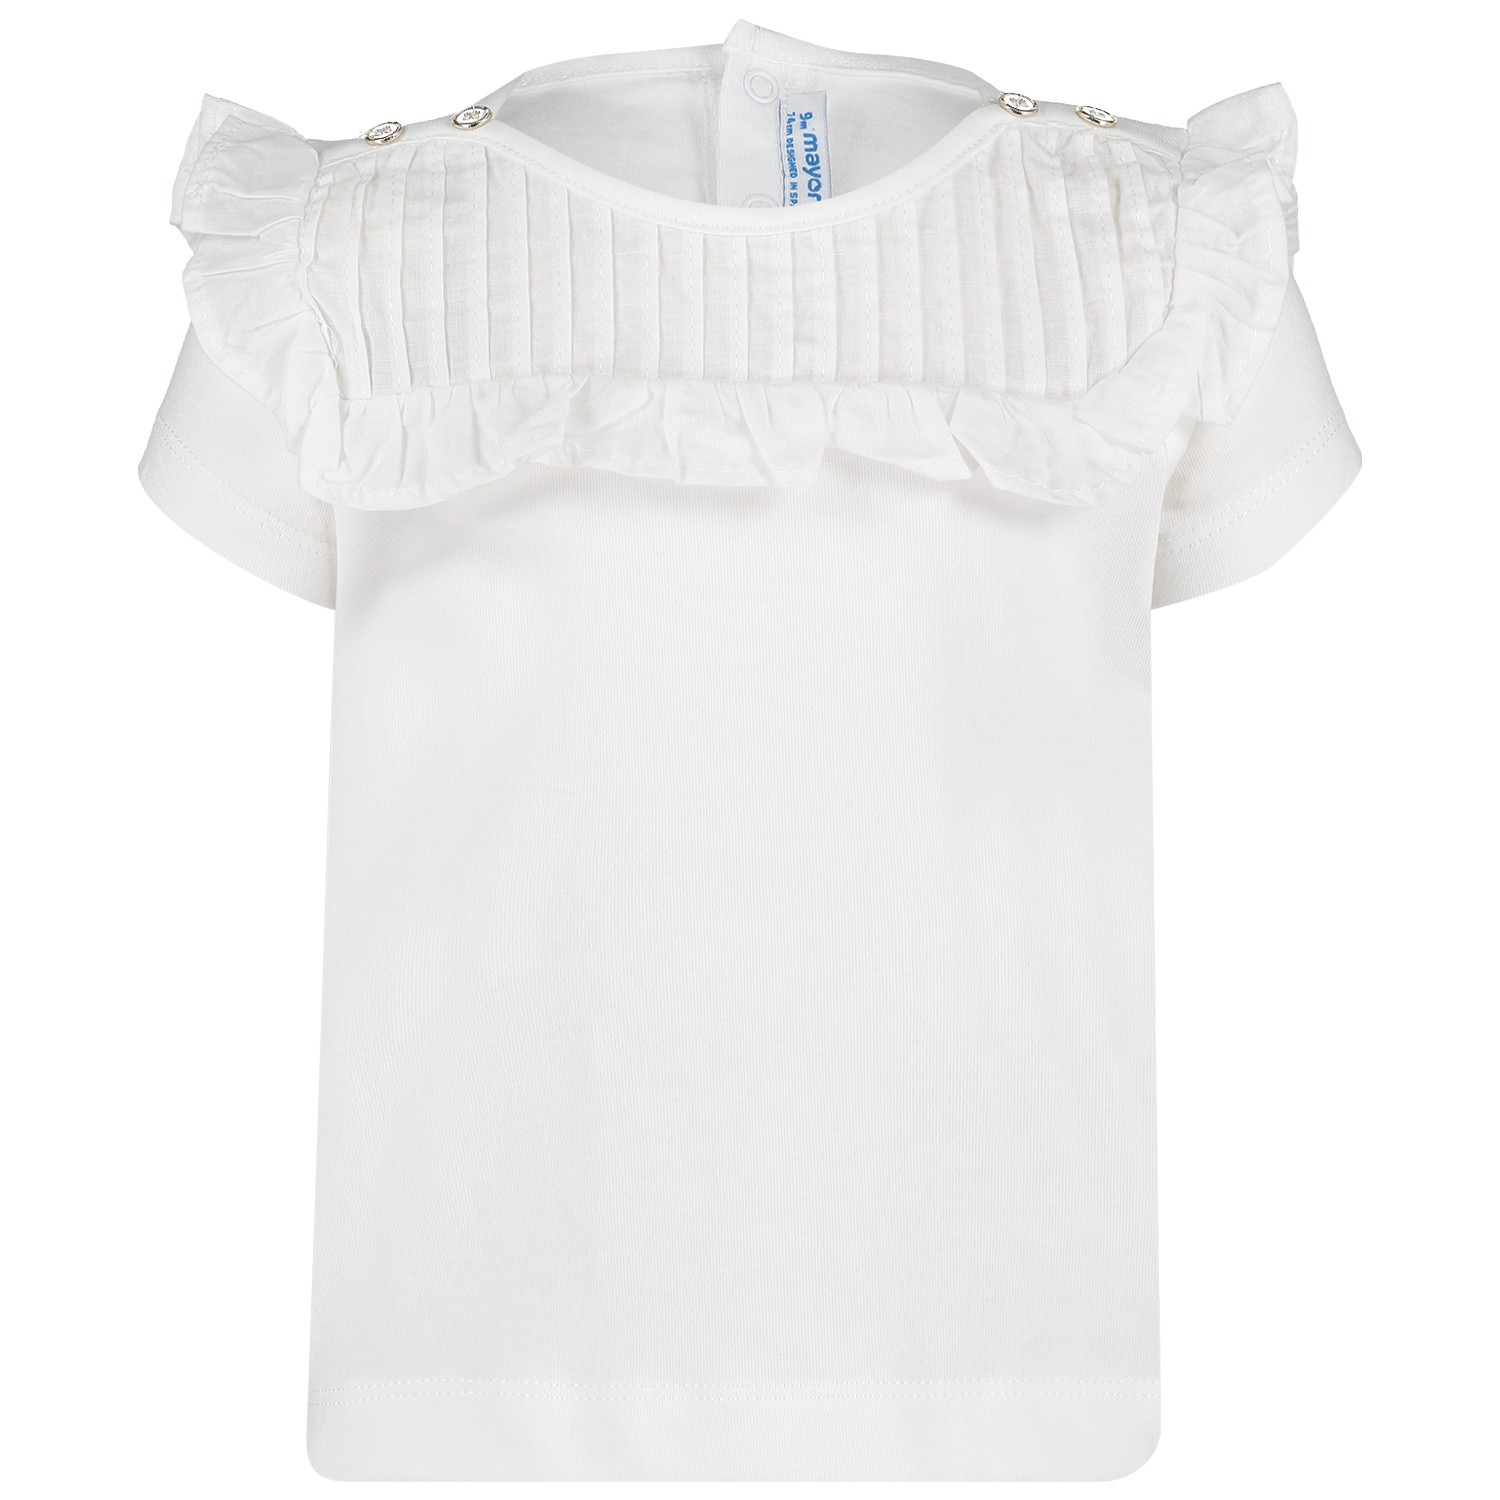 Picture of Mayoral 1013 baby shirt white